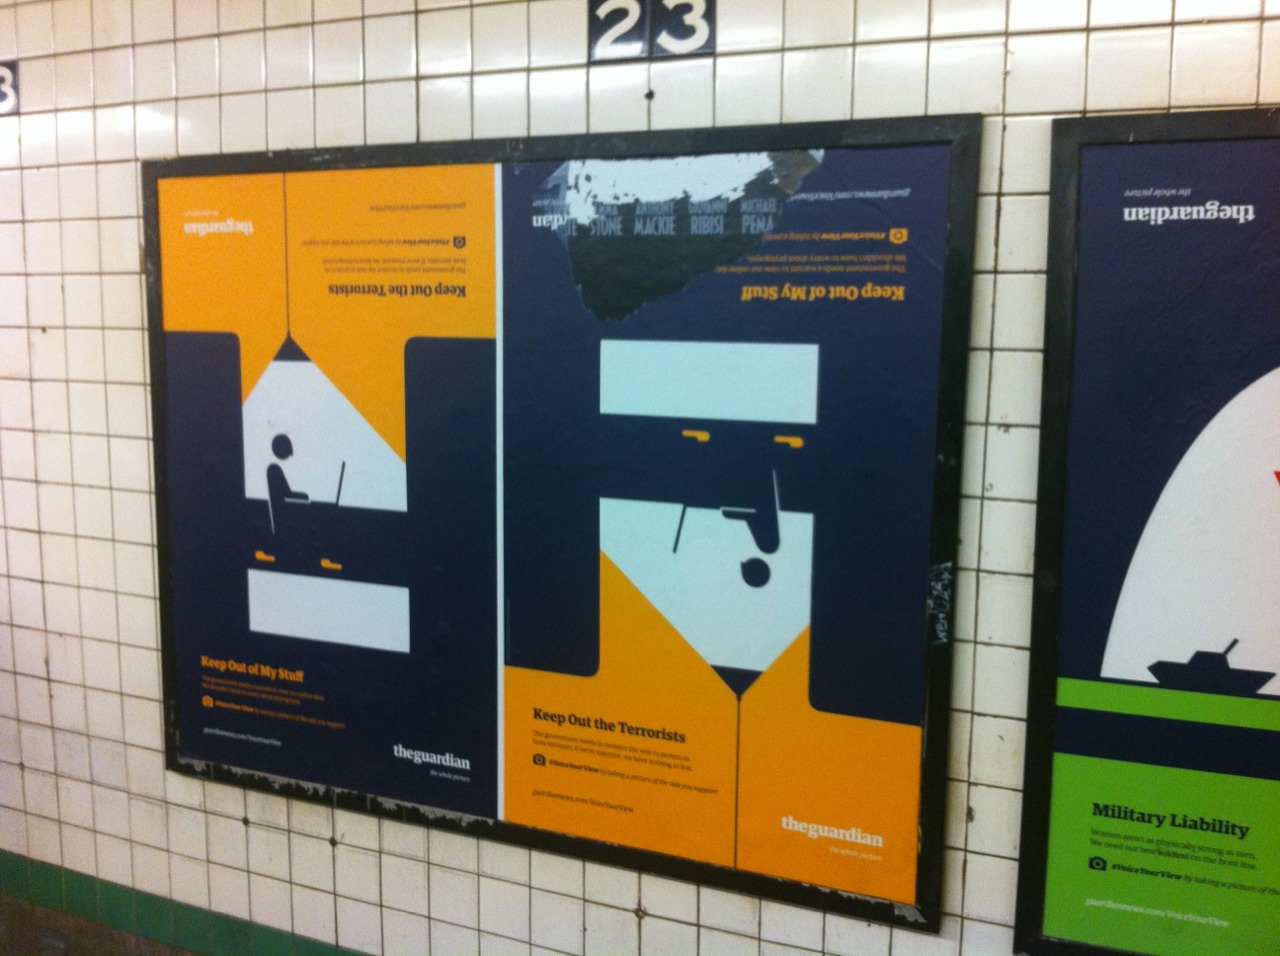 Subway posters for The Guardian: Get Out of My Stuff/Keep Out the Terrorists